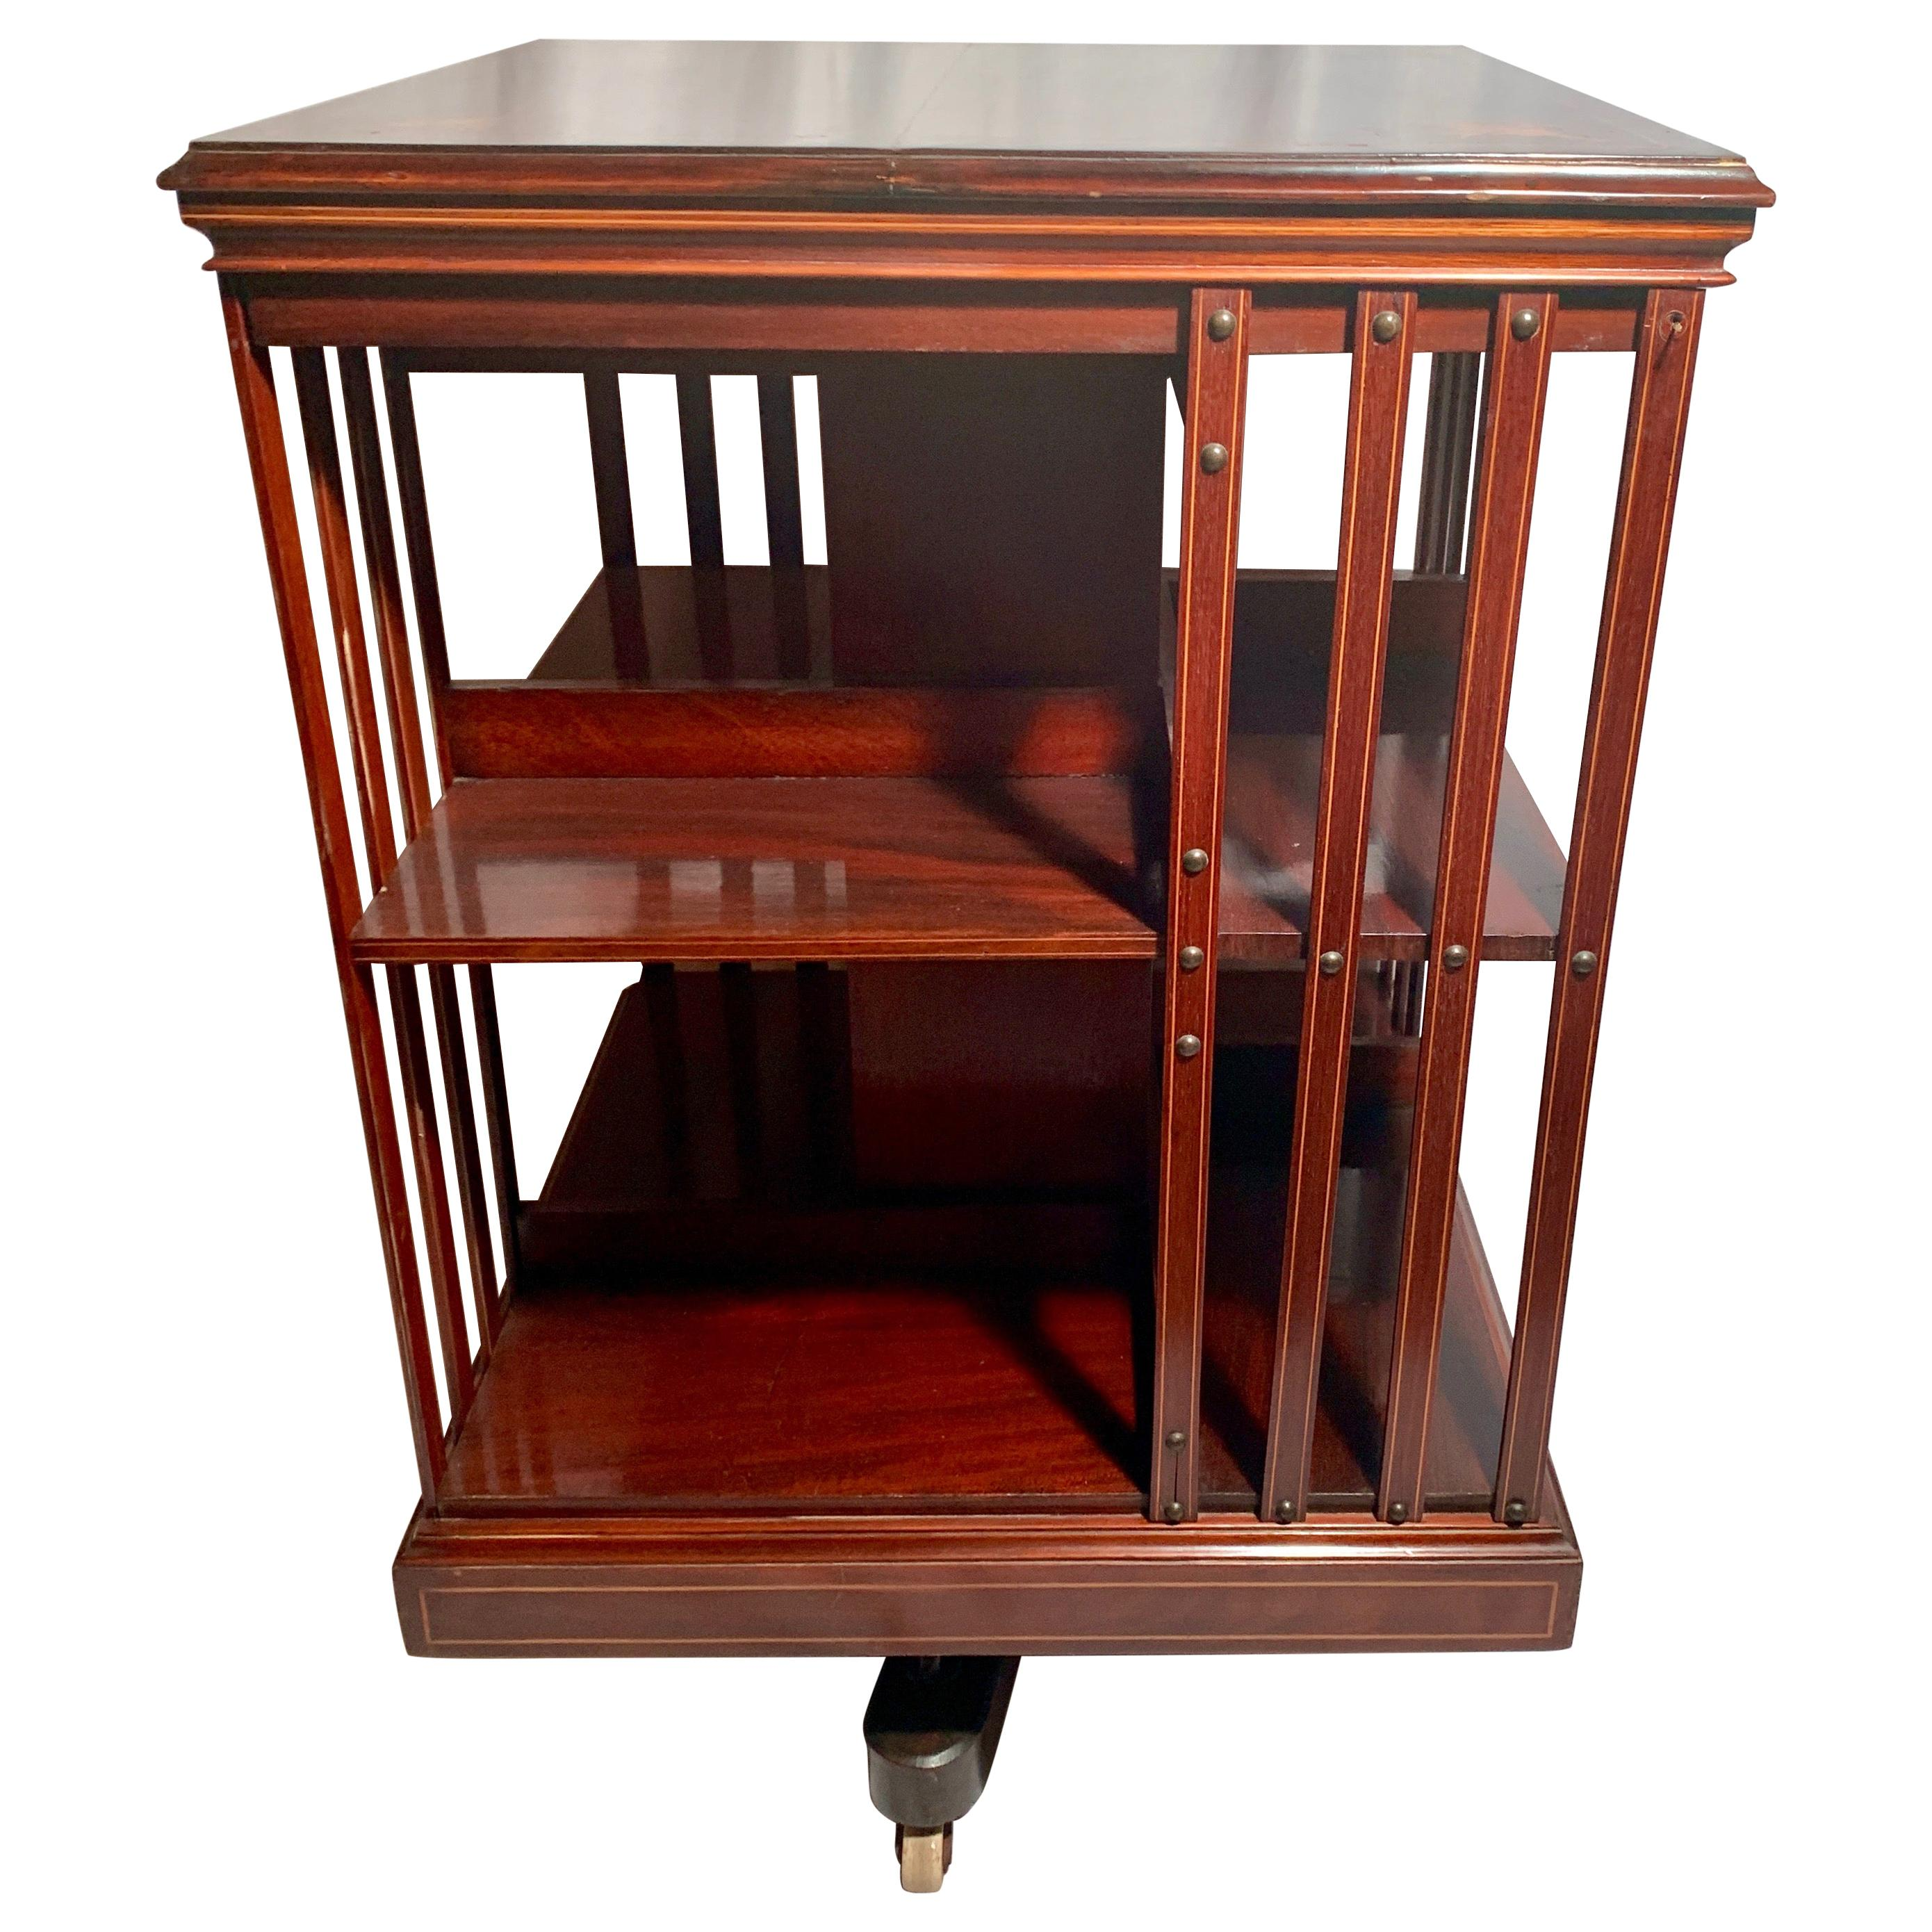 Antique English Mahogany Revolving Bookstand, circa 1870-1880